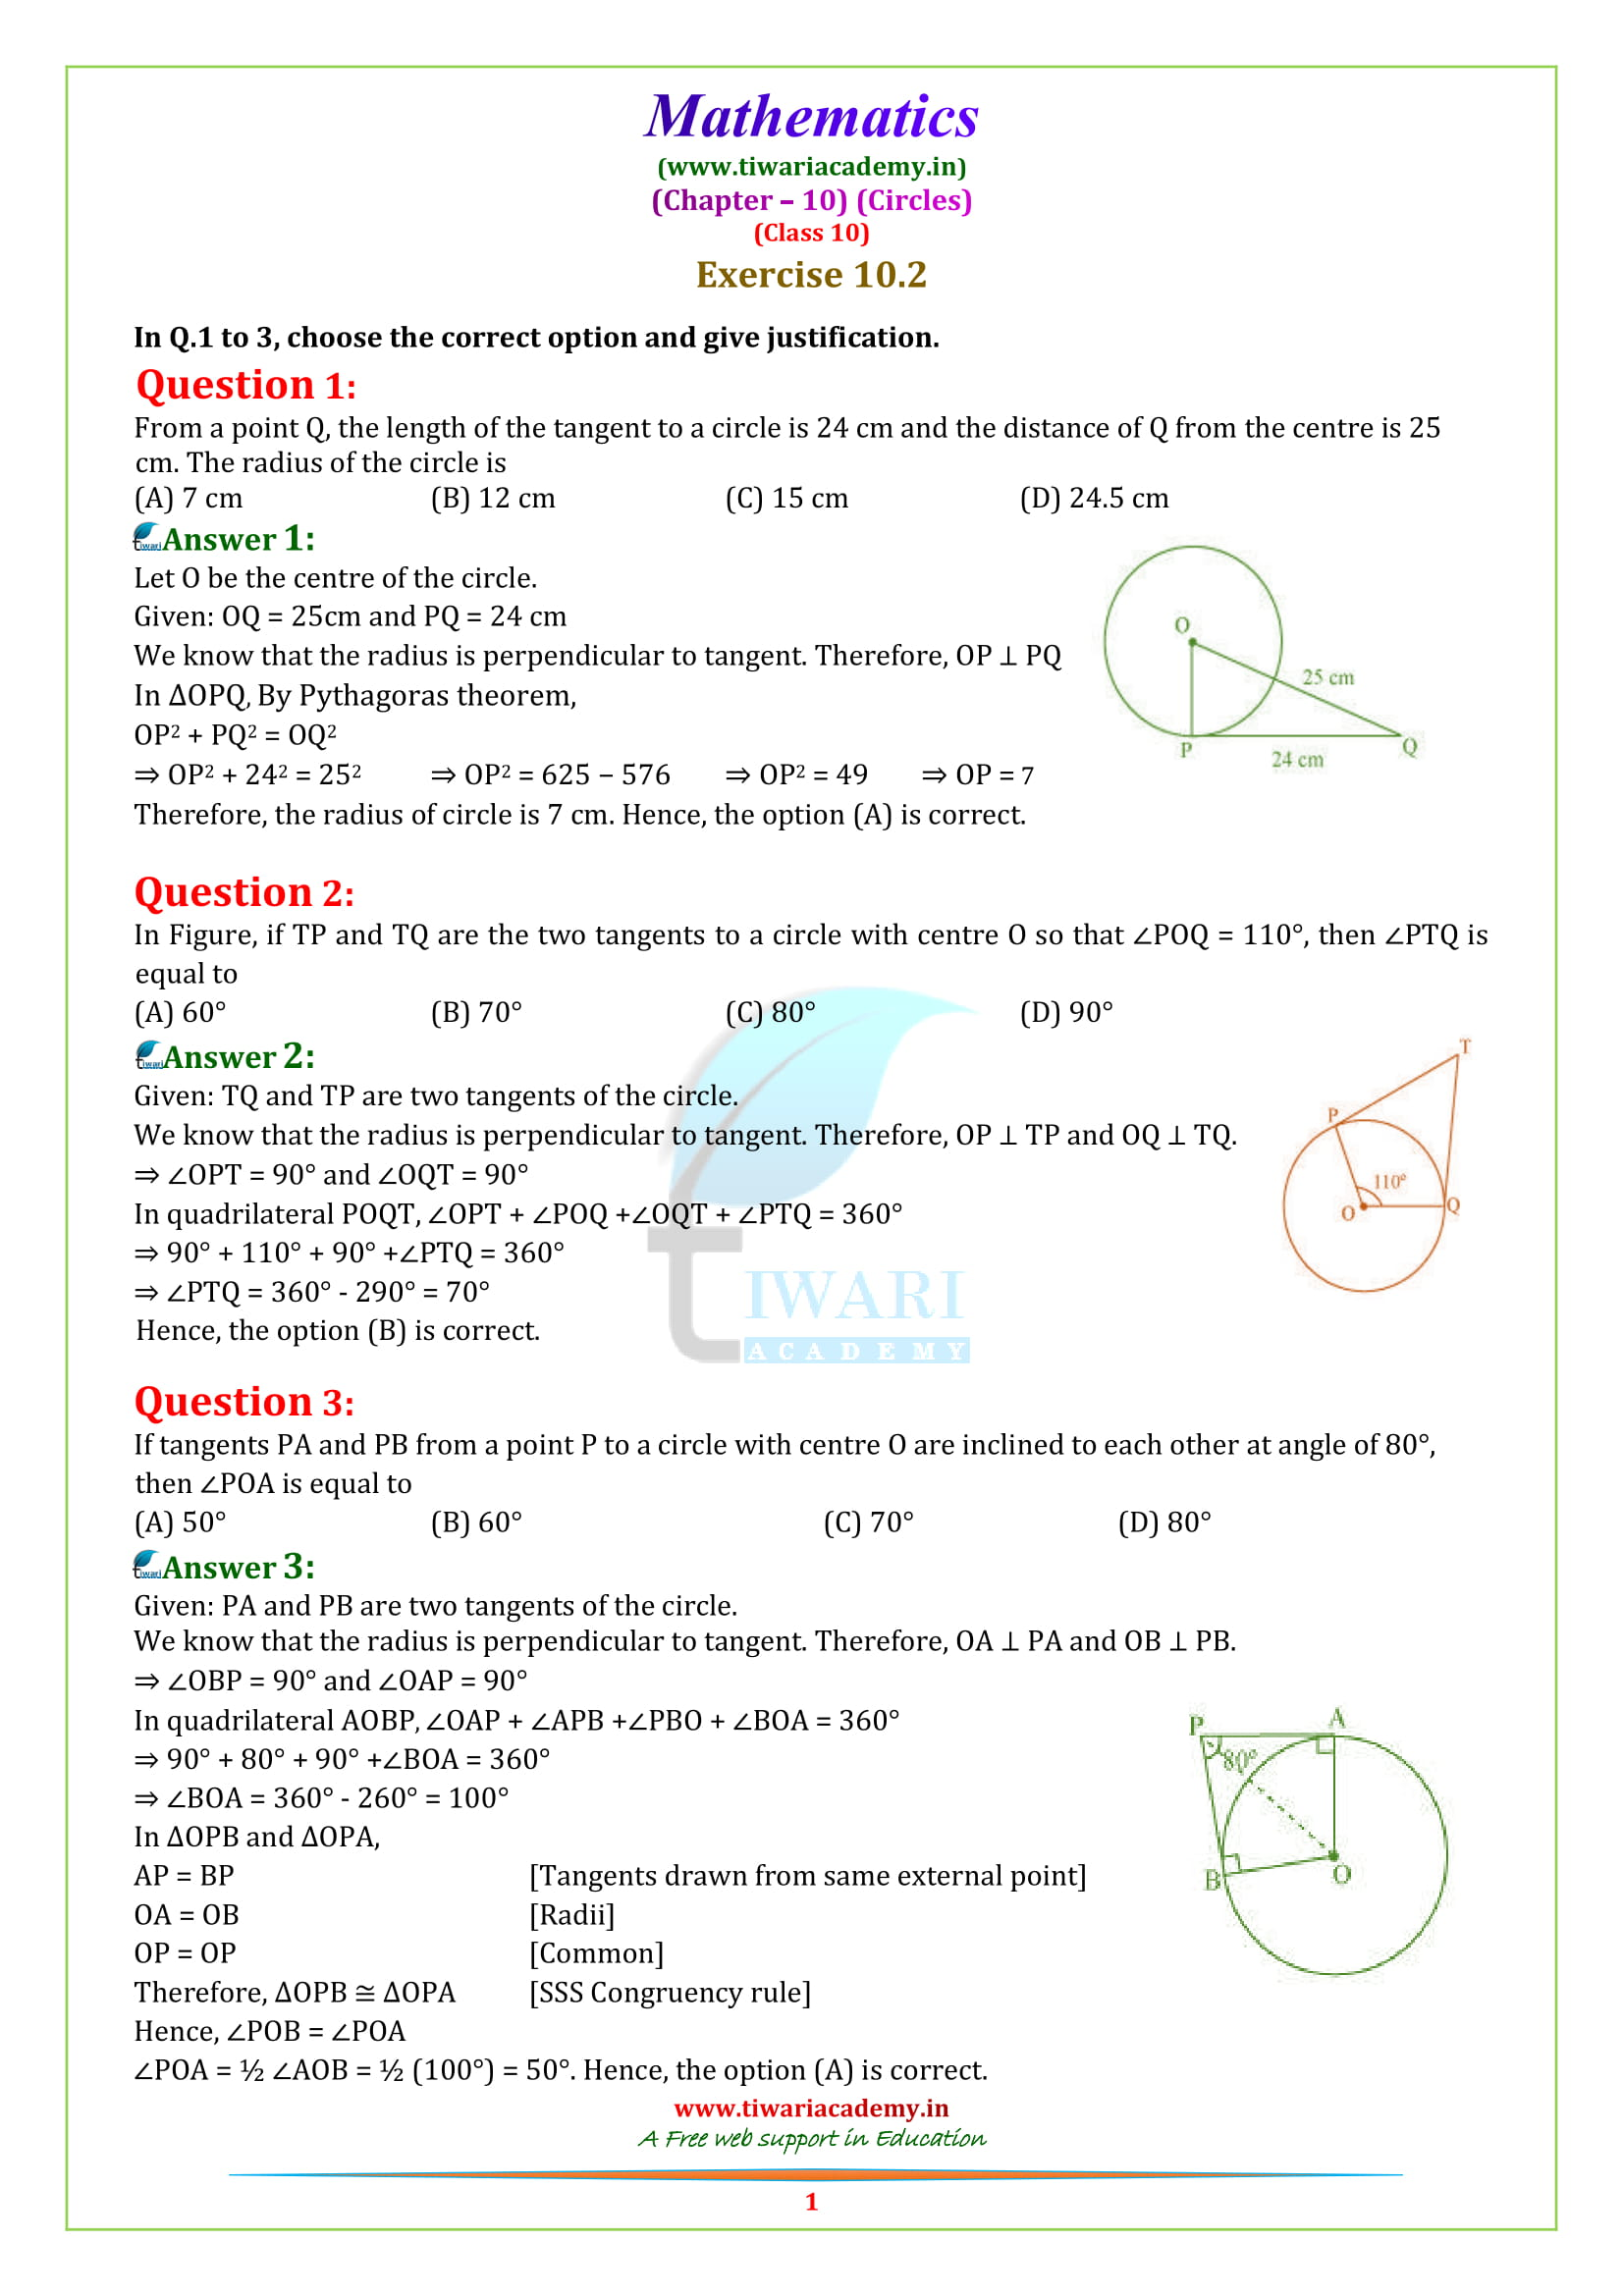 Class 10 Maths exercise 10.2 solutions in english medium